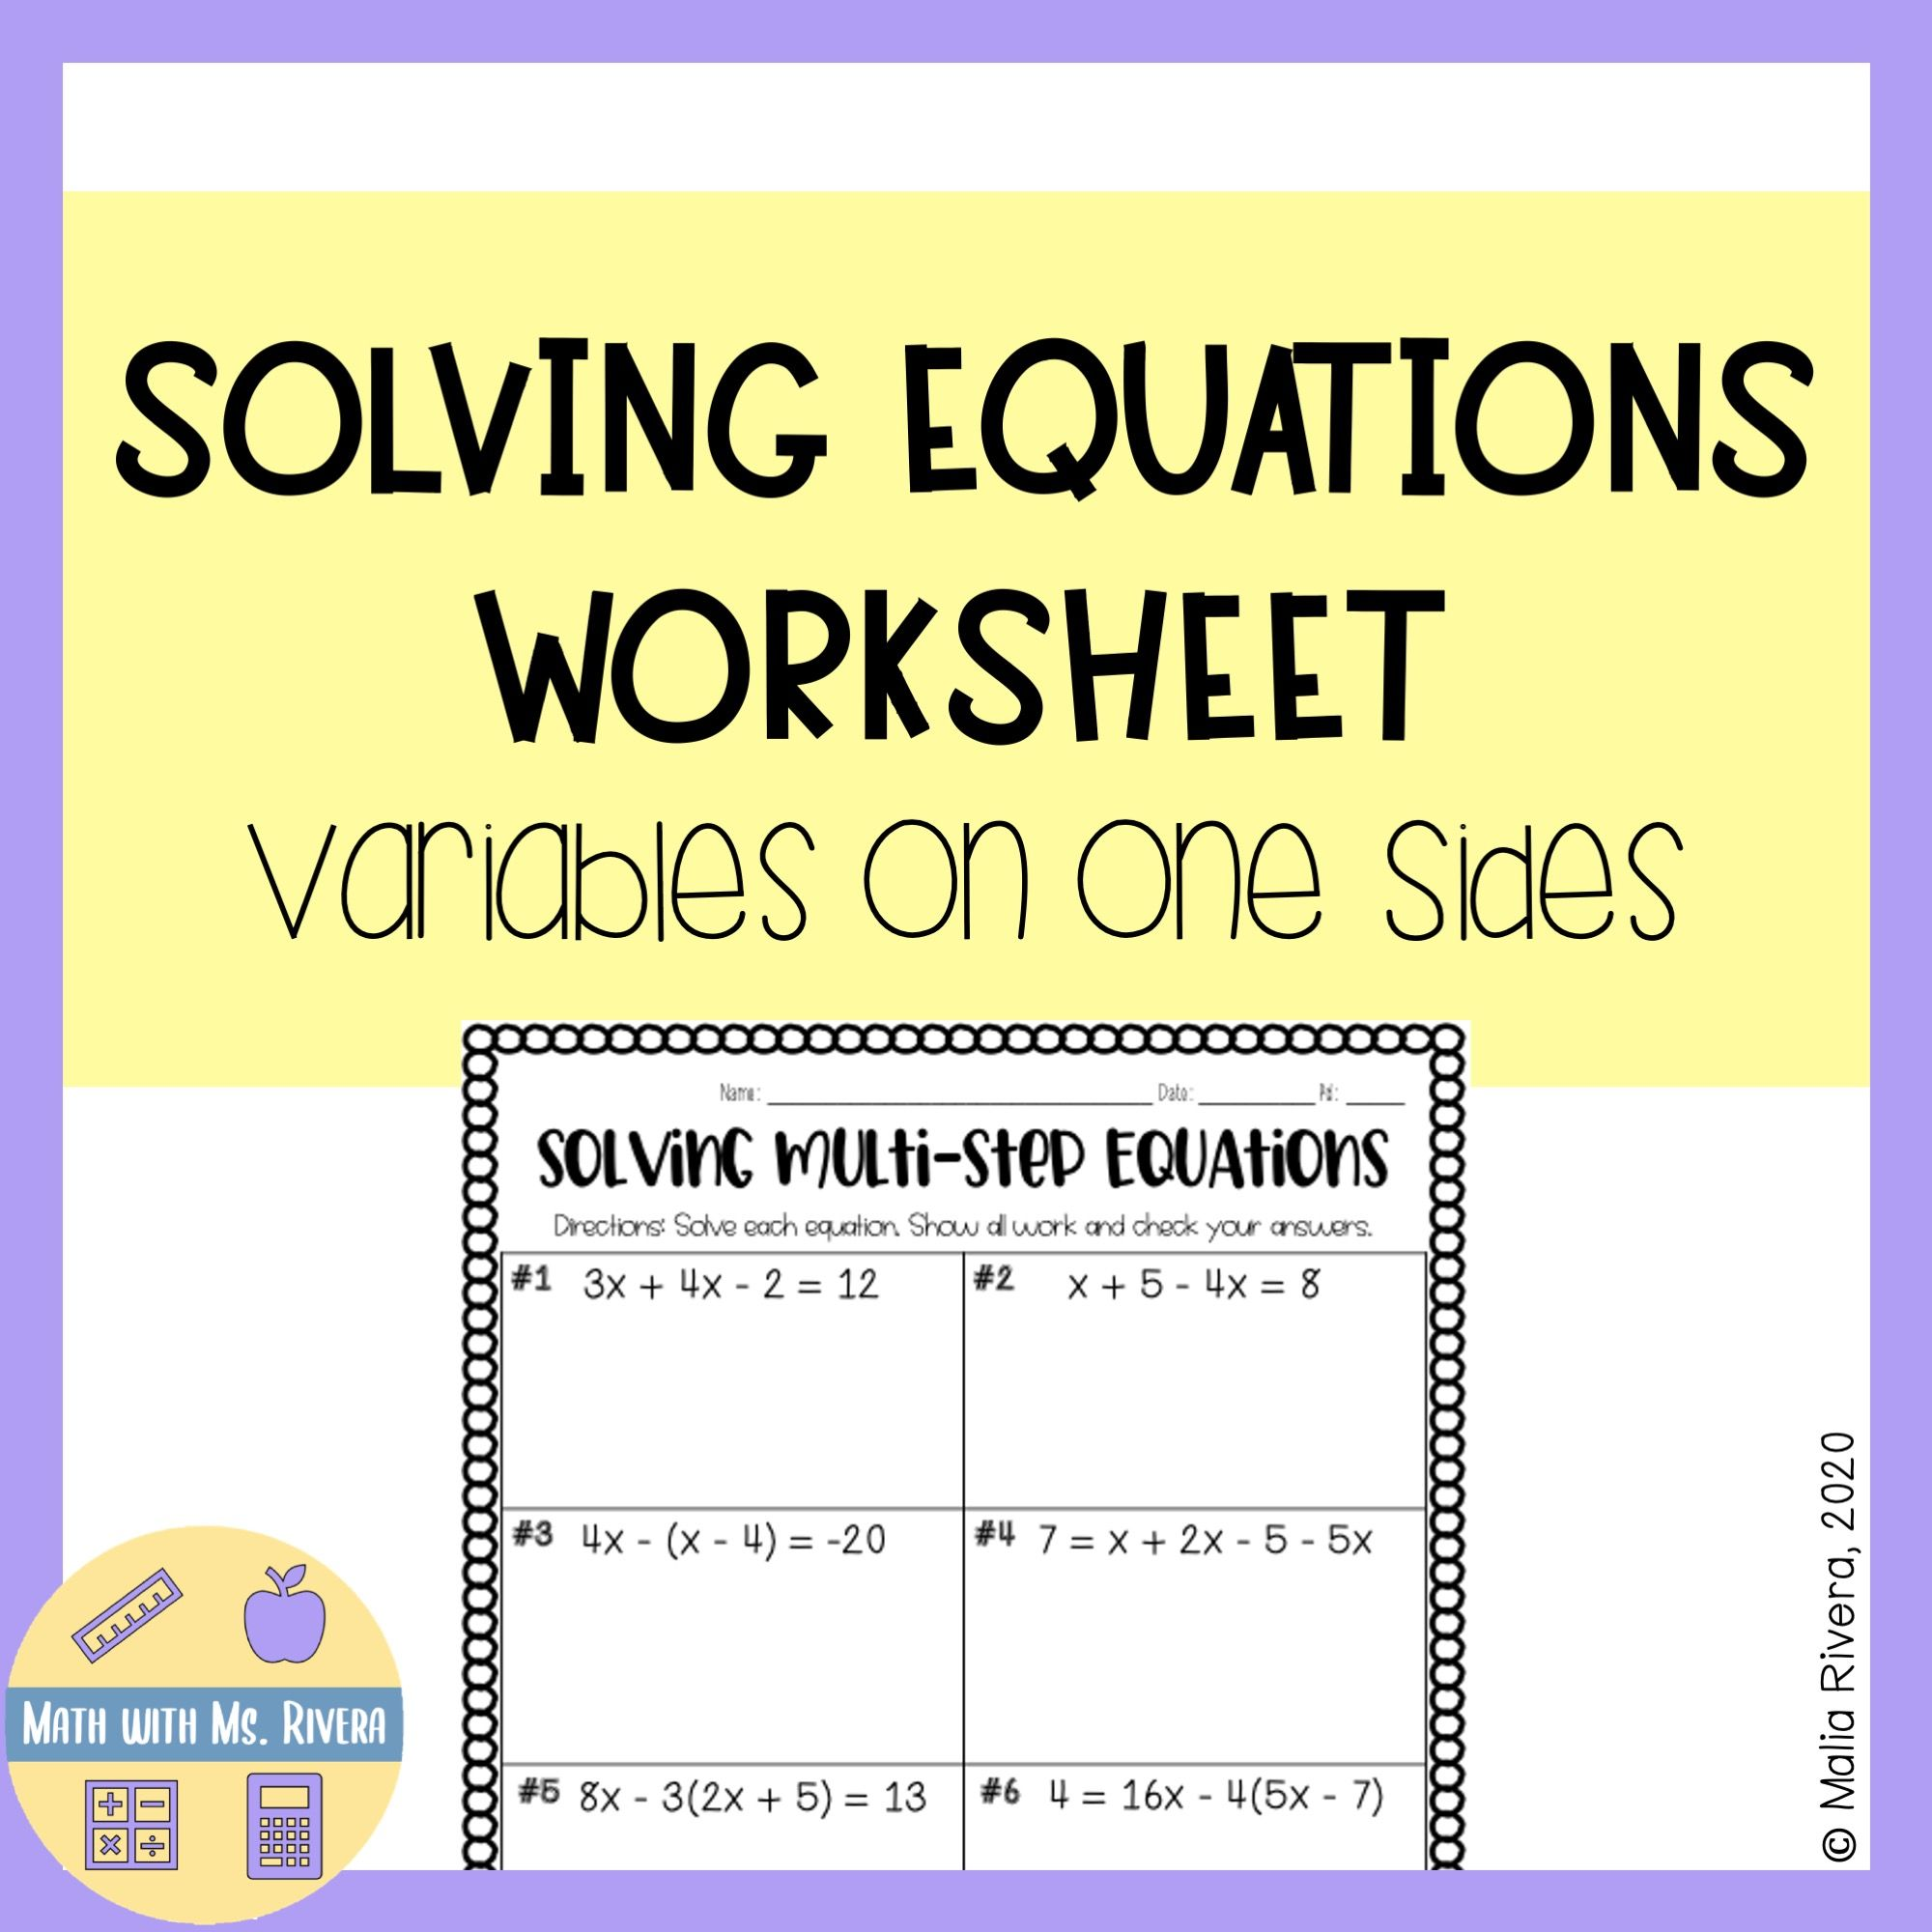 medium resolution of Solving Multistep Equations with Variables on One Side Worksheet   Multi  step equations